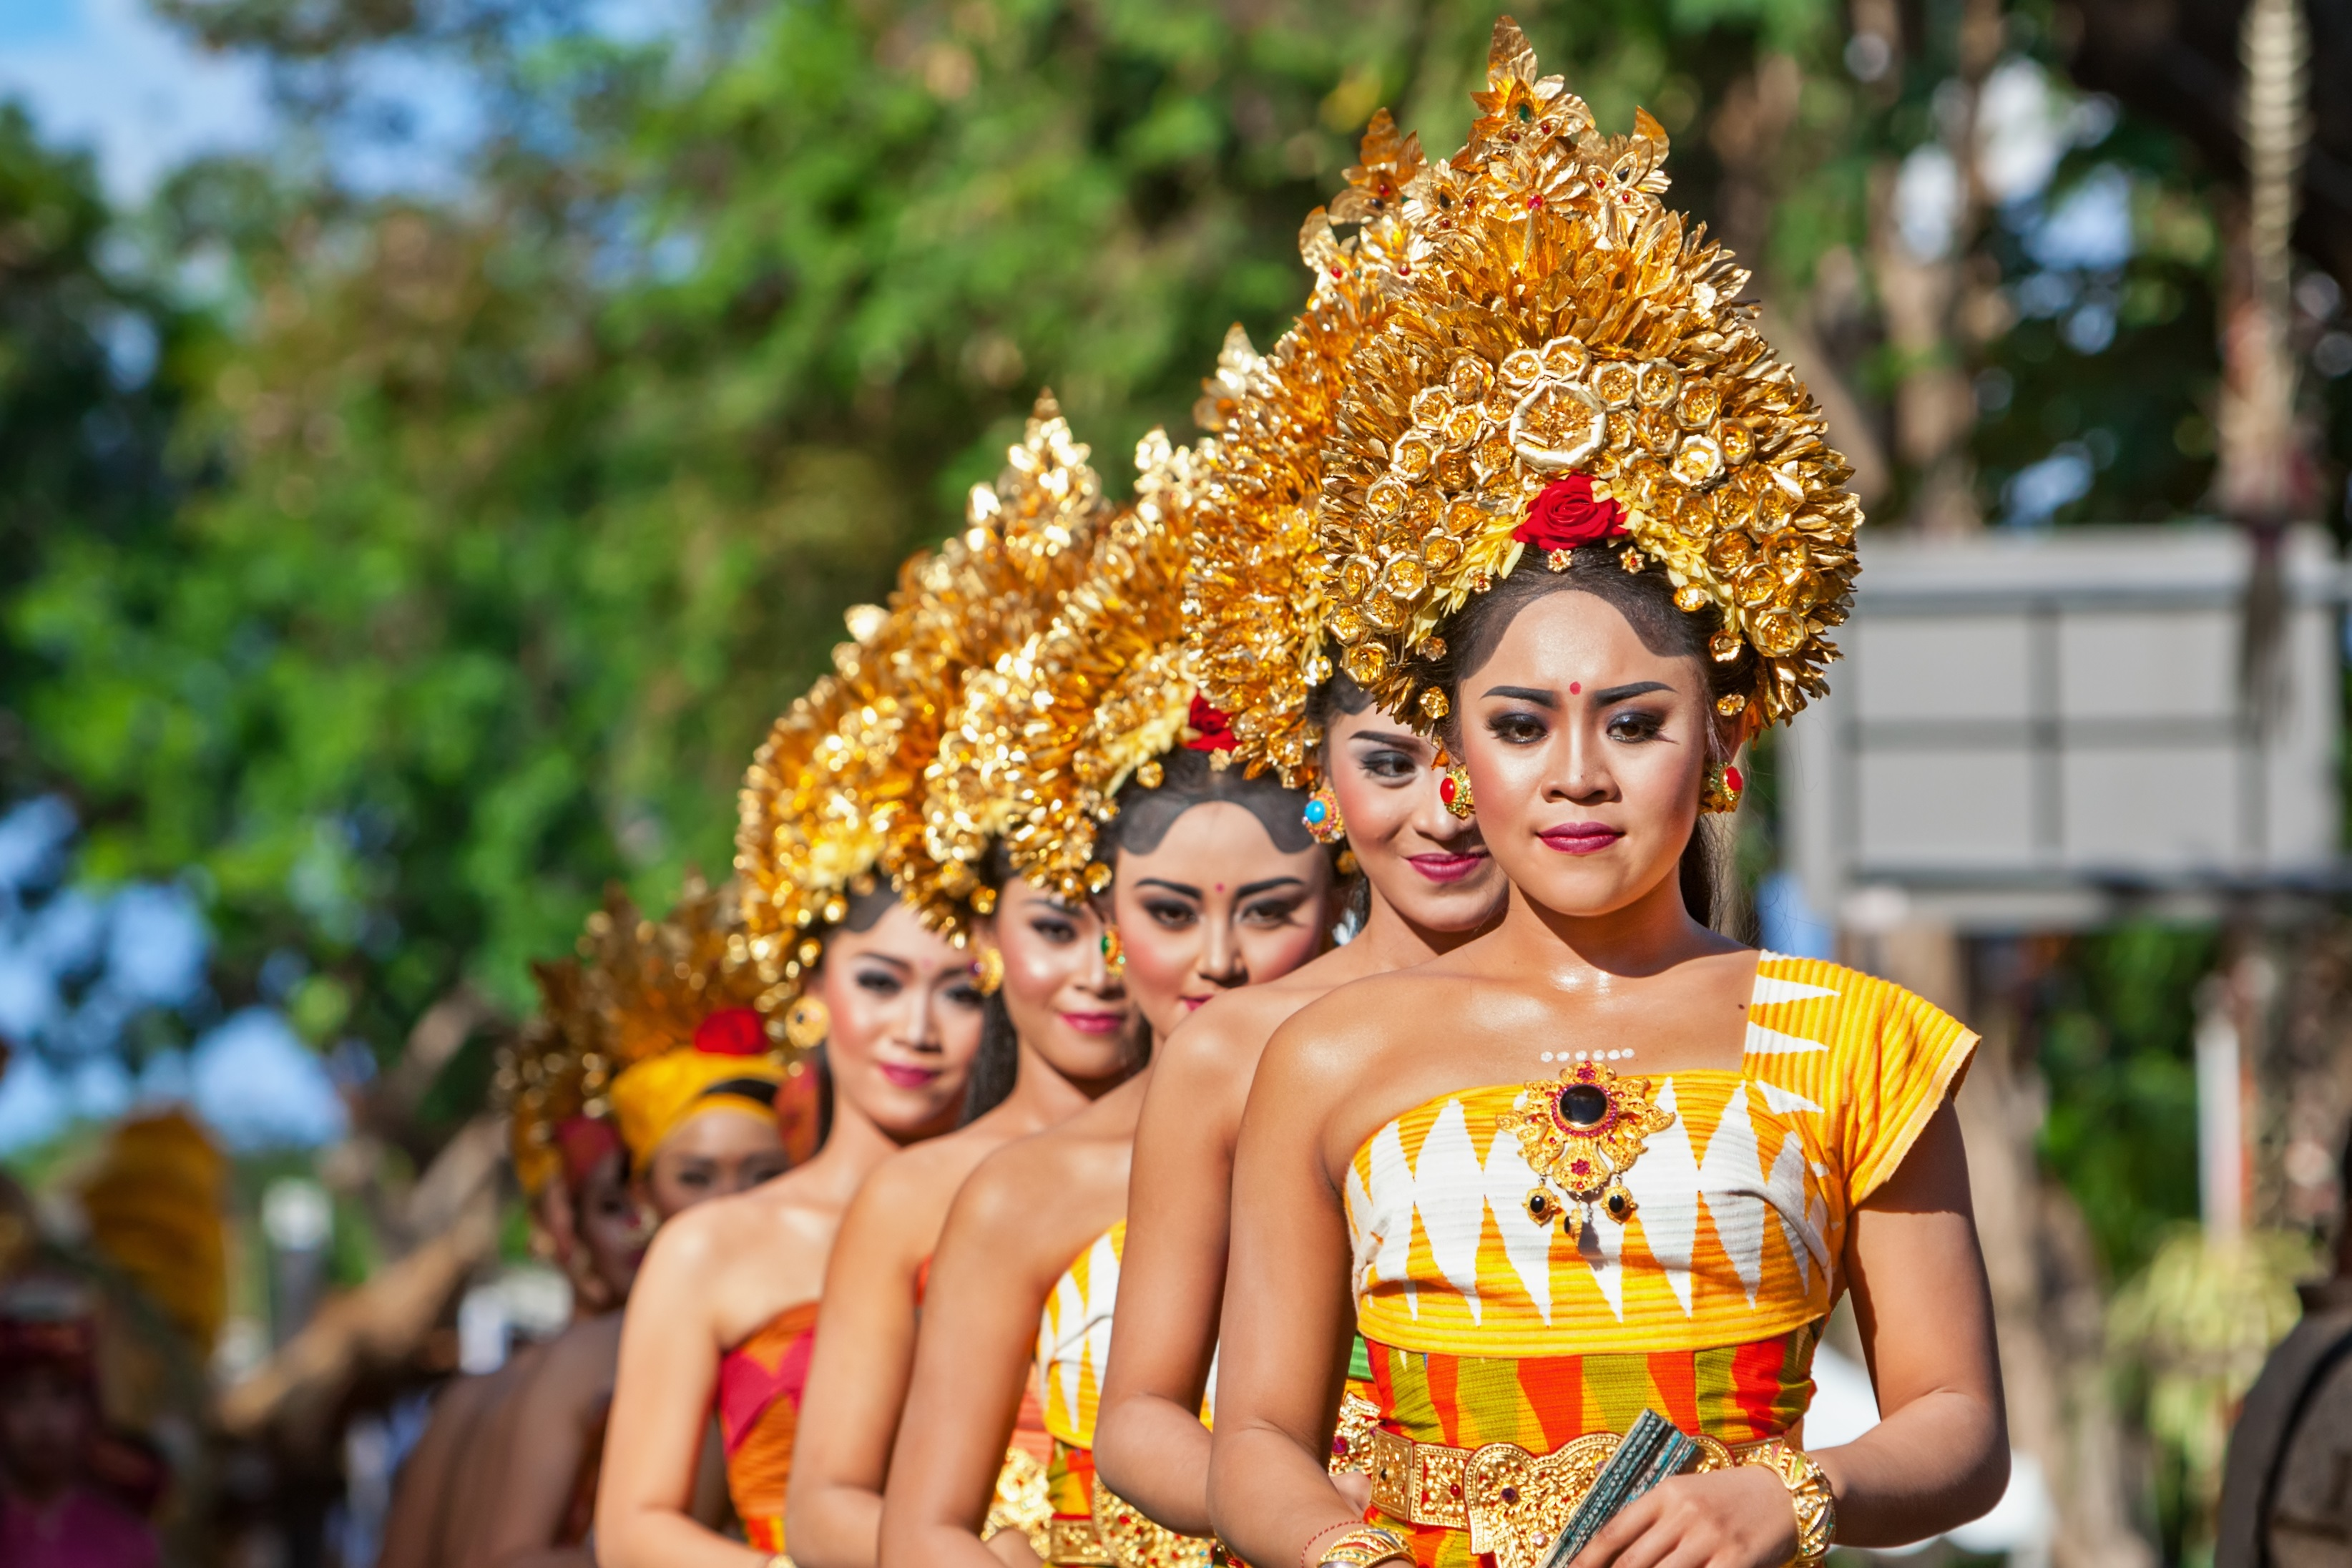 Denpasar, Bali Island, Indonesia - June 11, 2016: Group of Balinese people. Beautiful dancer women in traditional costumes dance on street parade at art and culture festival.